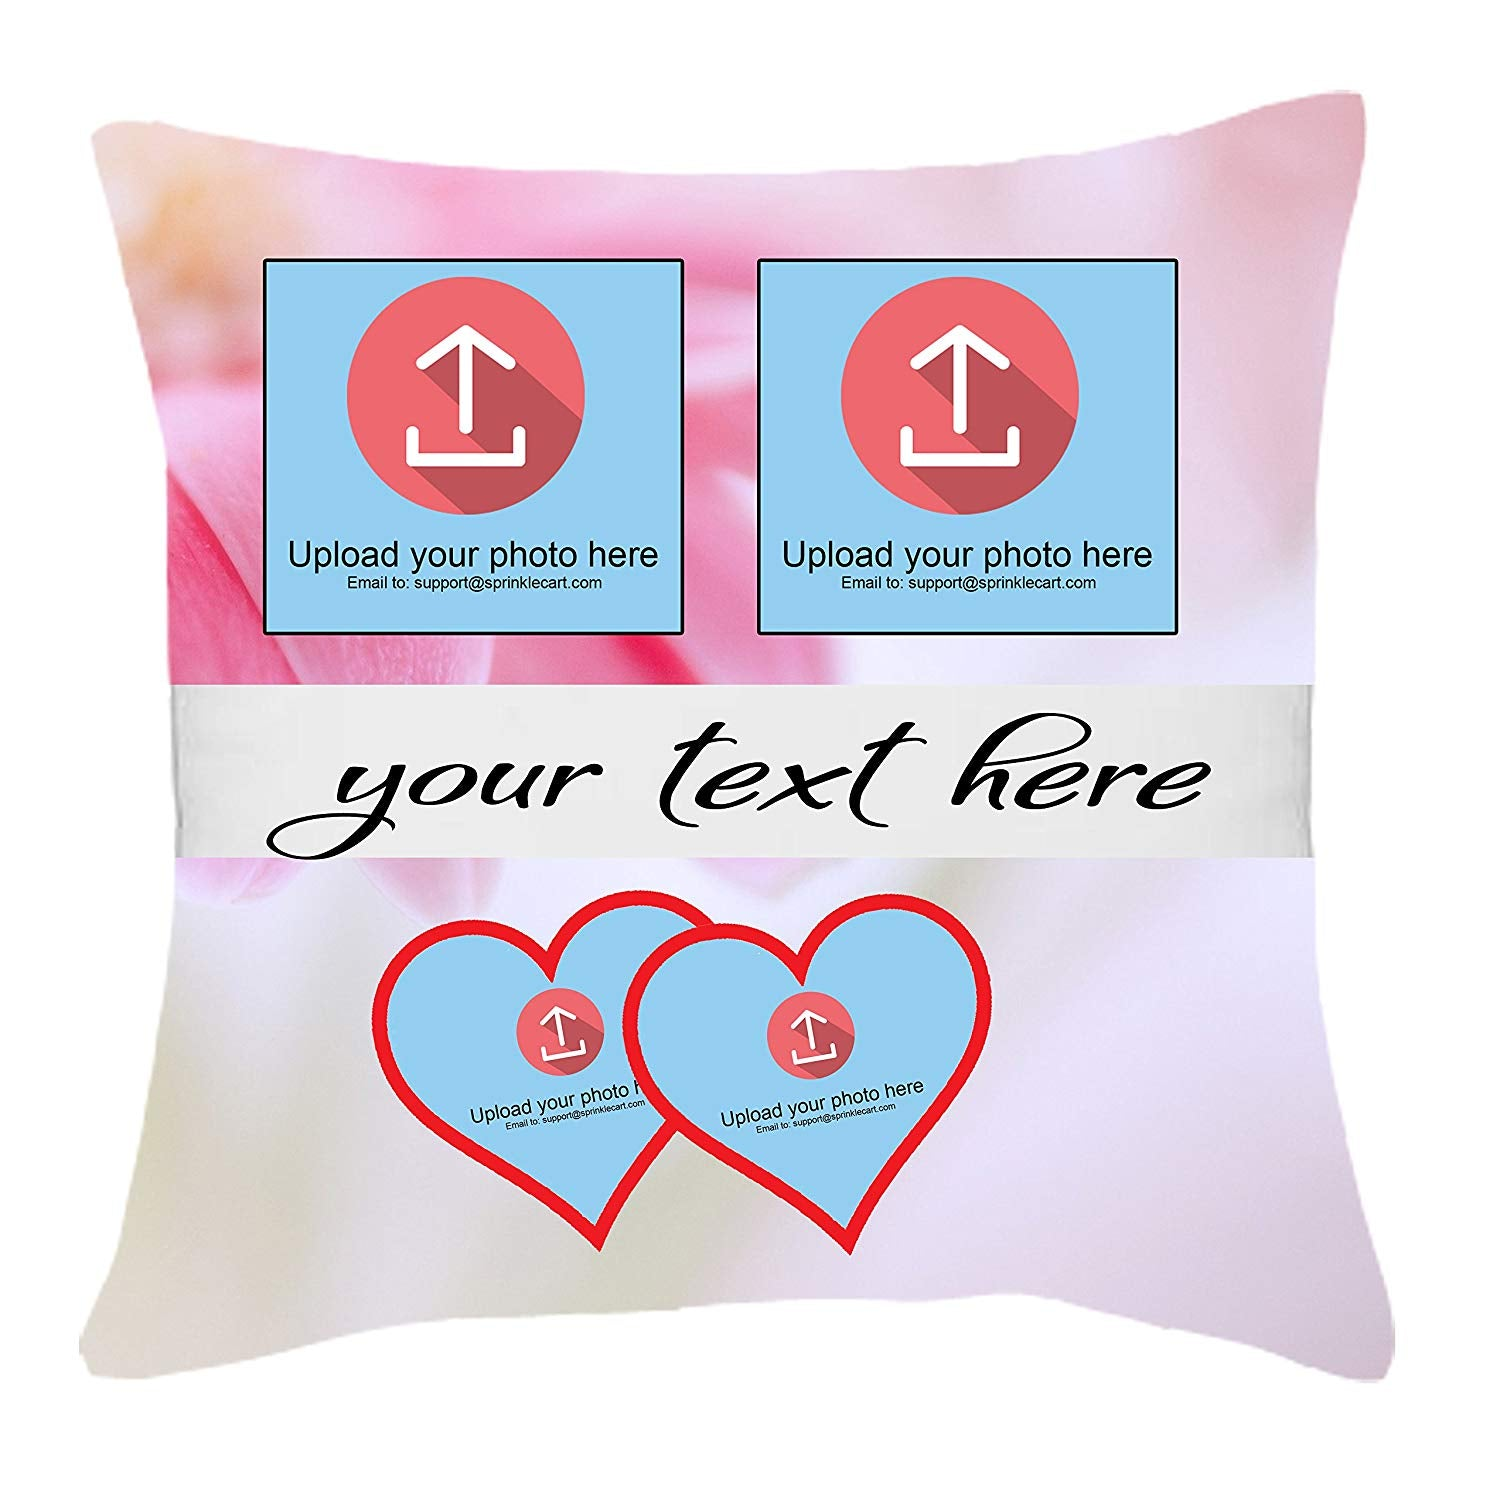 Sprinklecart's Cute Pink Backgrounded Customized Photo and Message Printed 15″ x 15″ Inches Gift Pillows